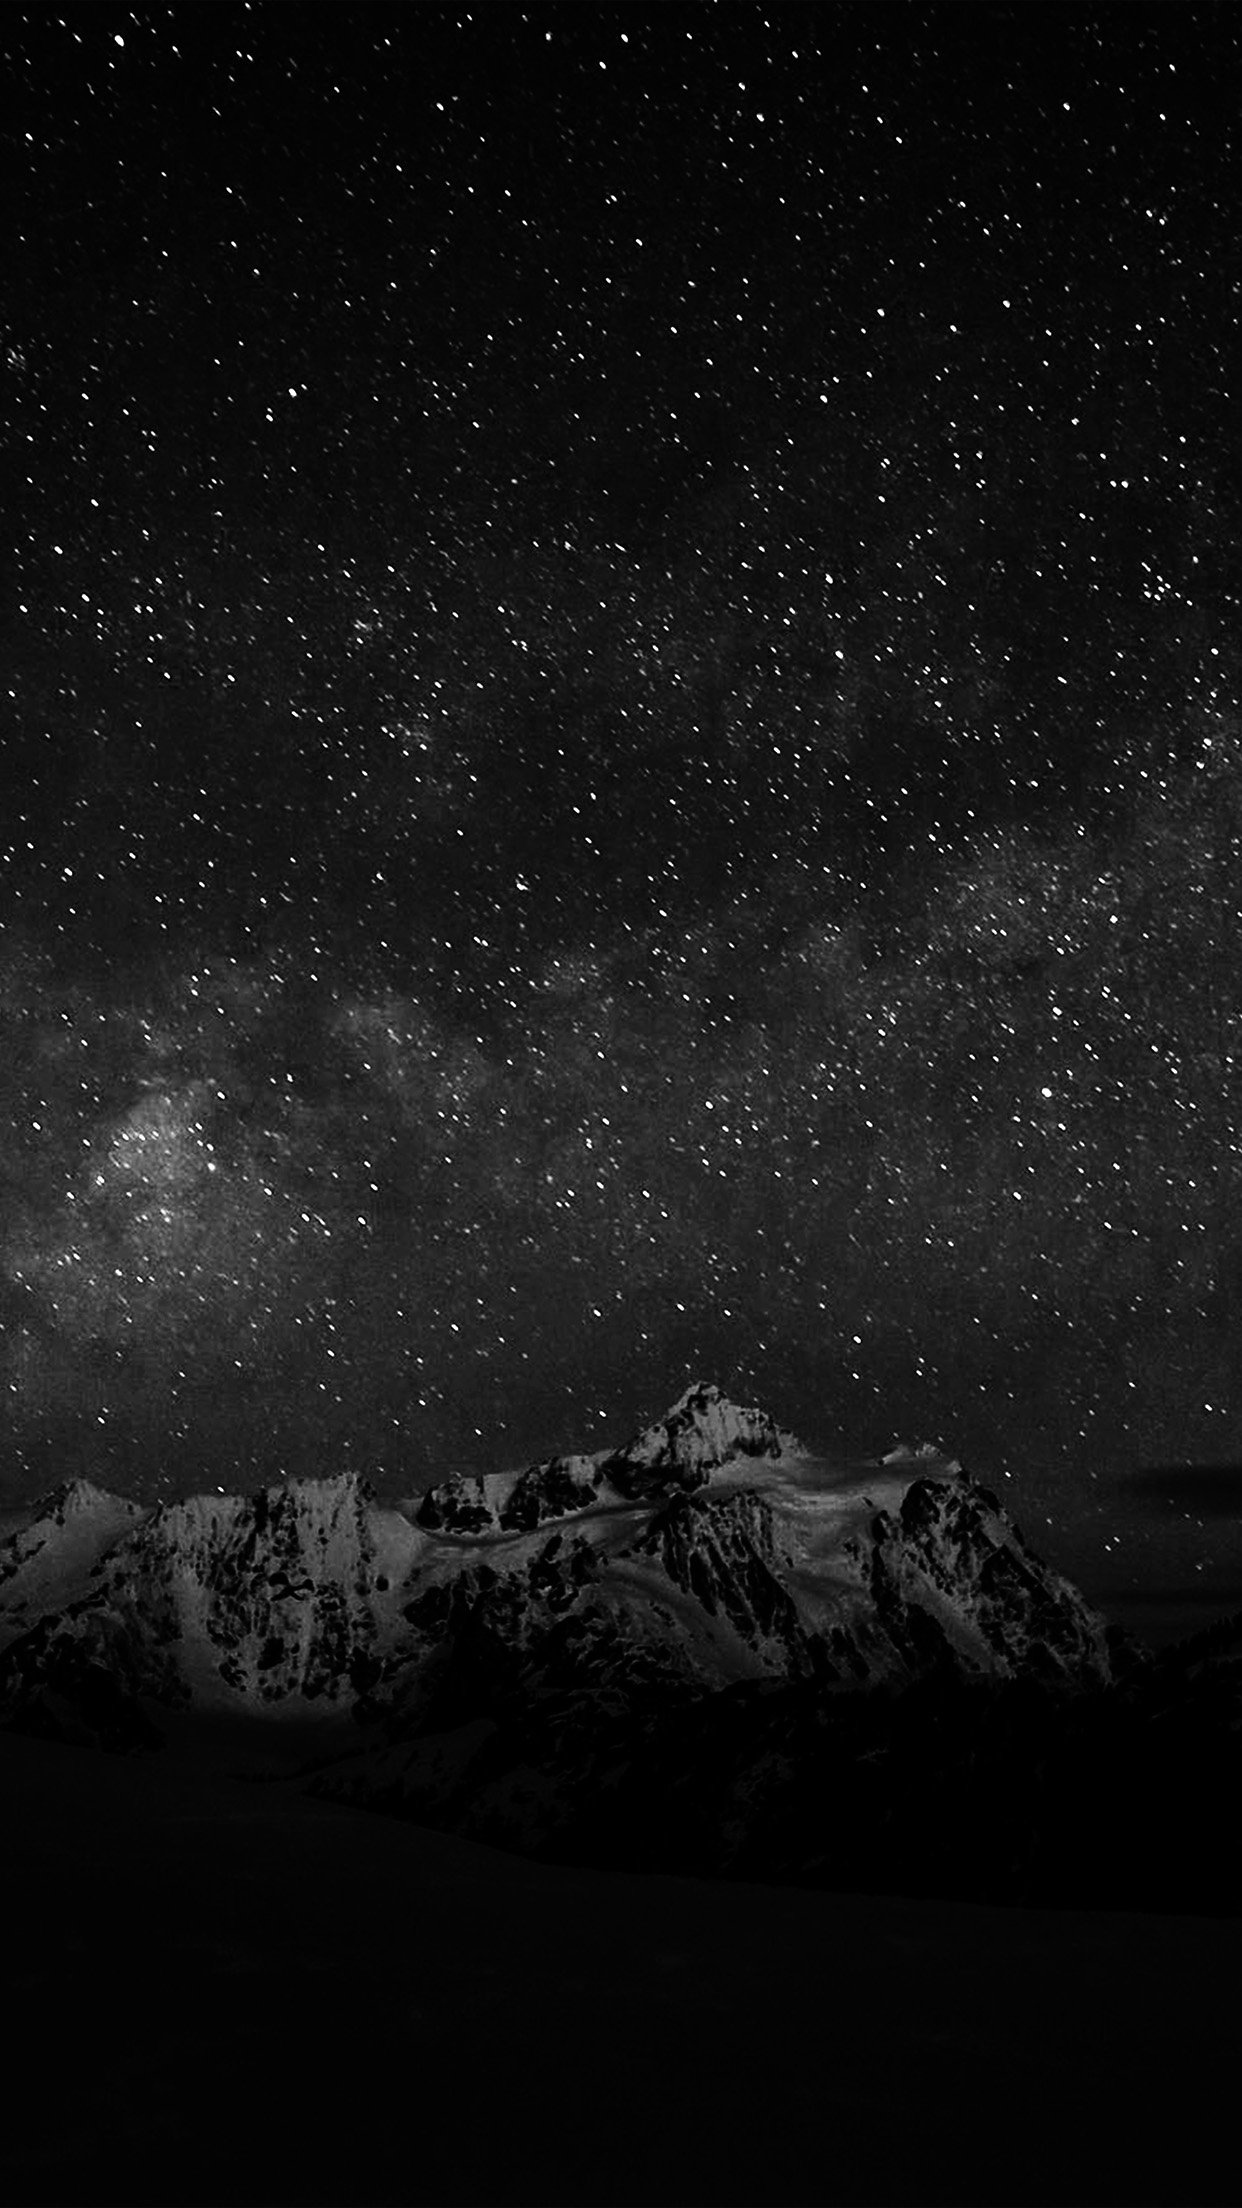 Starry night sky mountain nature bw dark android wallpaper starry night sky mountain nature bw dark android wallpaper android hd wallpapers voltagebd